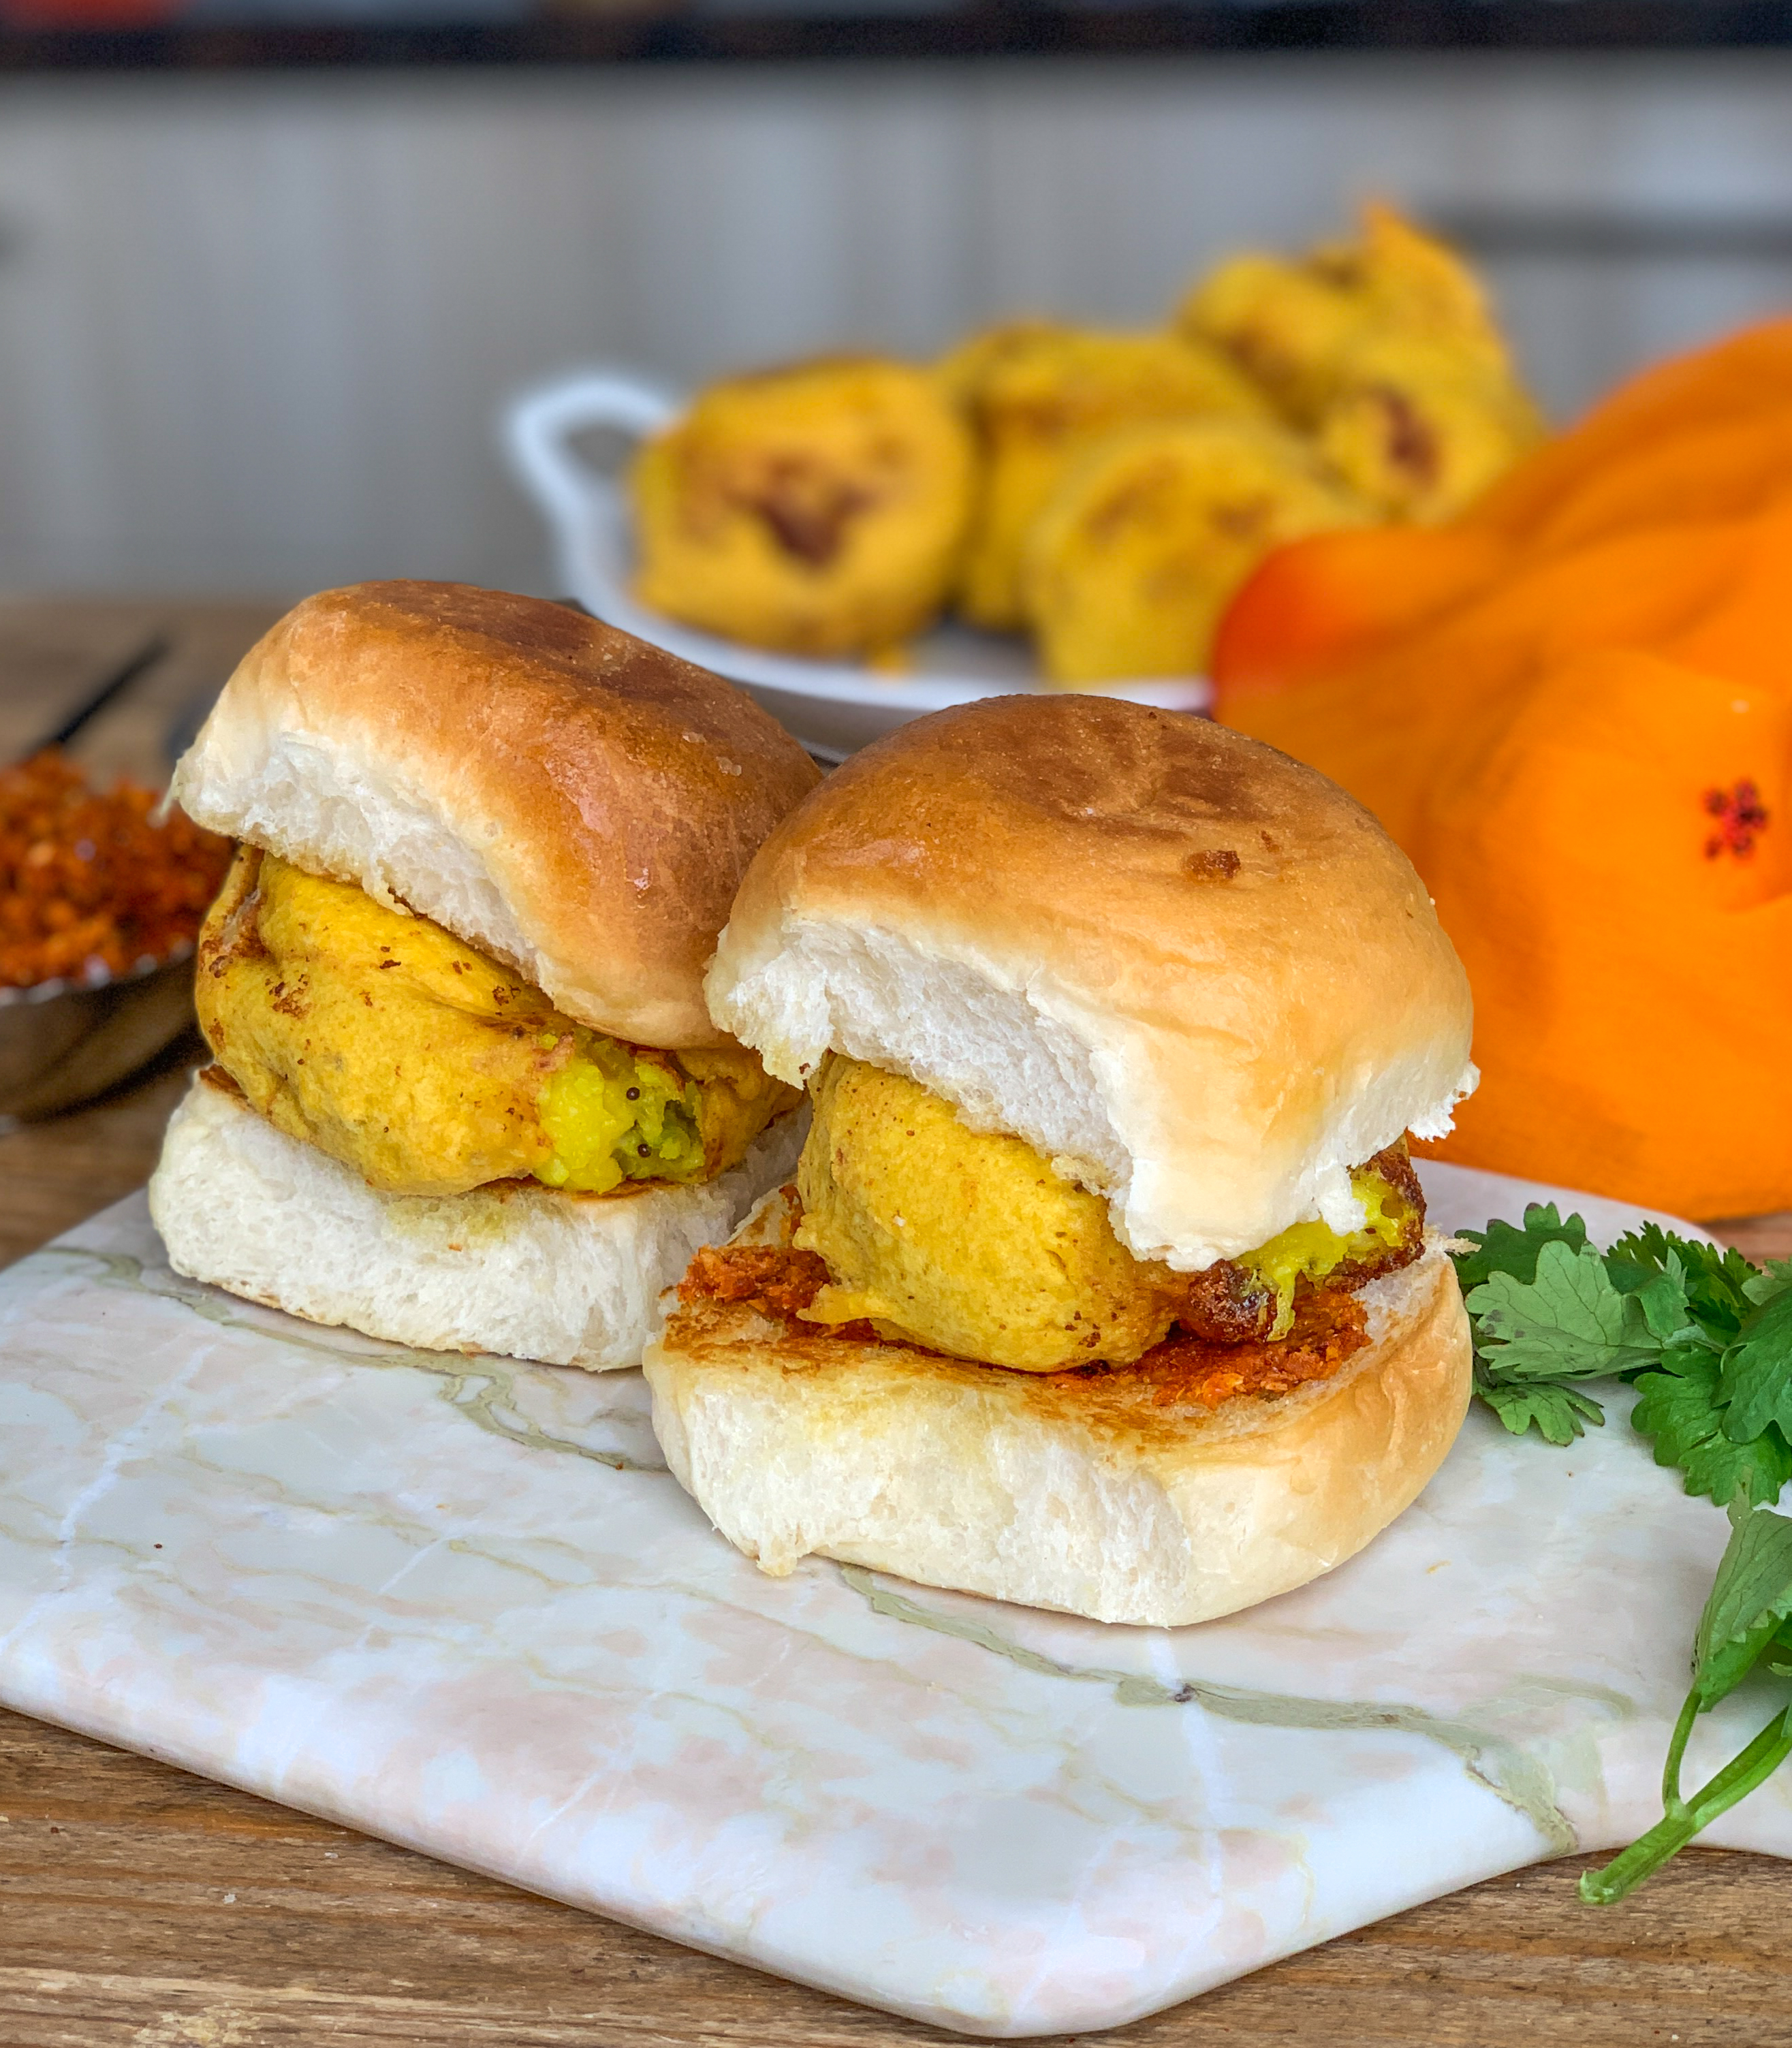 Homemade Vada Pav Recipe With Cheesy Aloo Vada